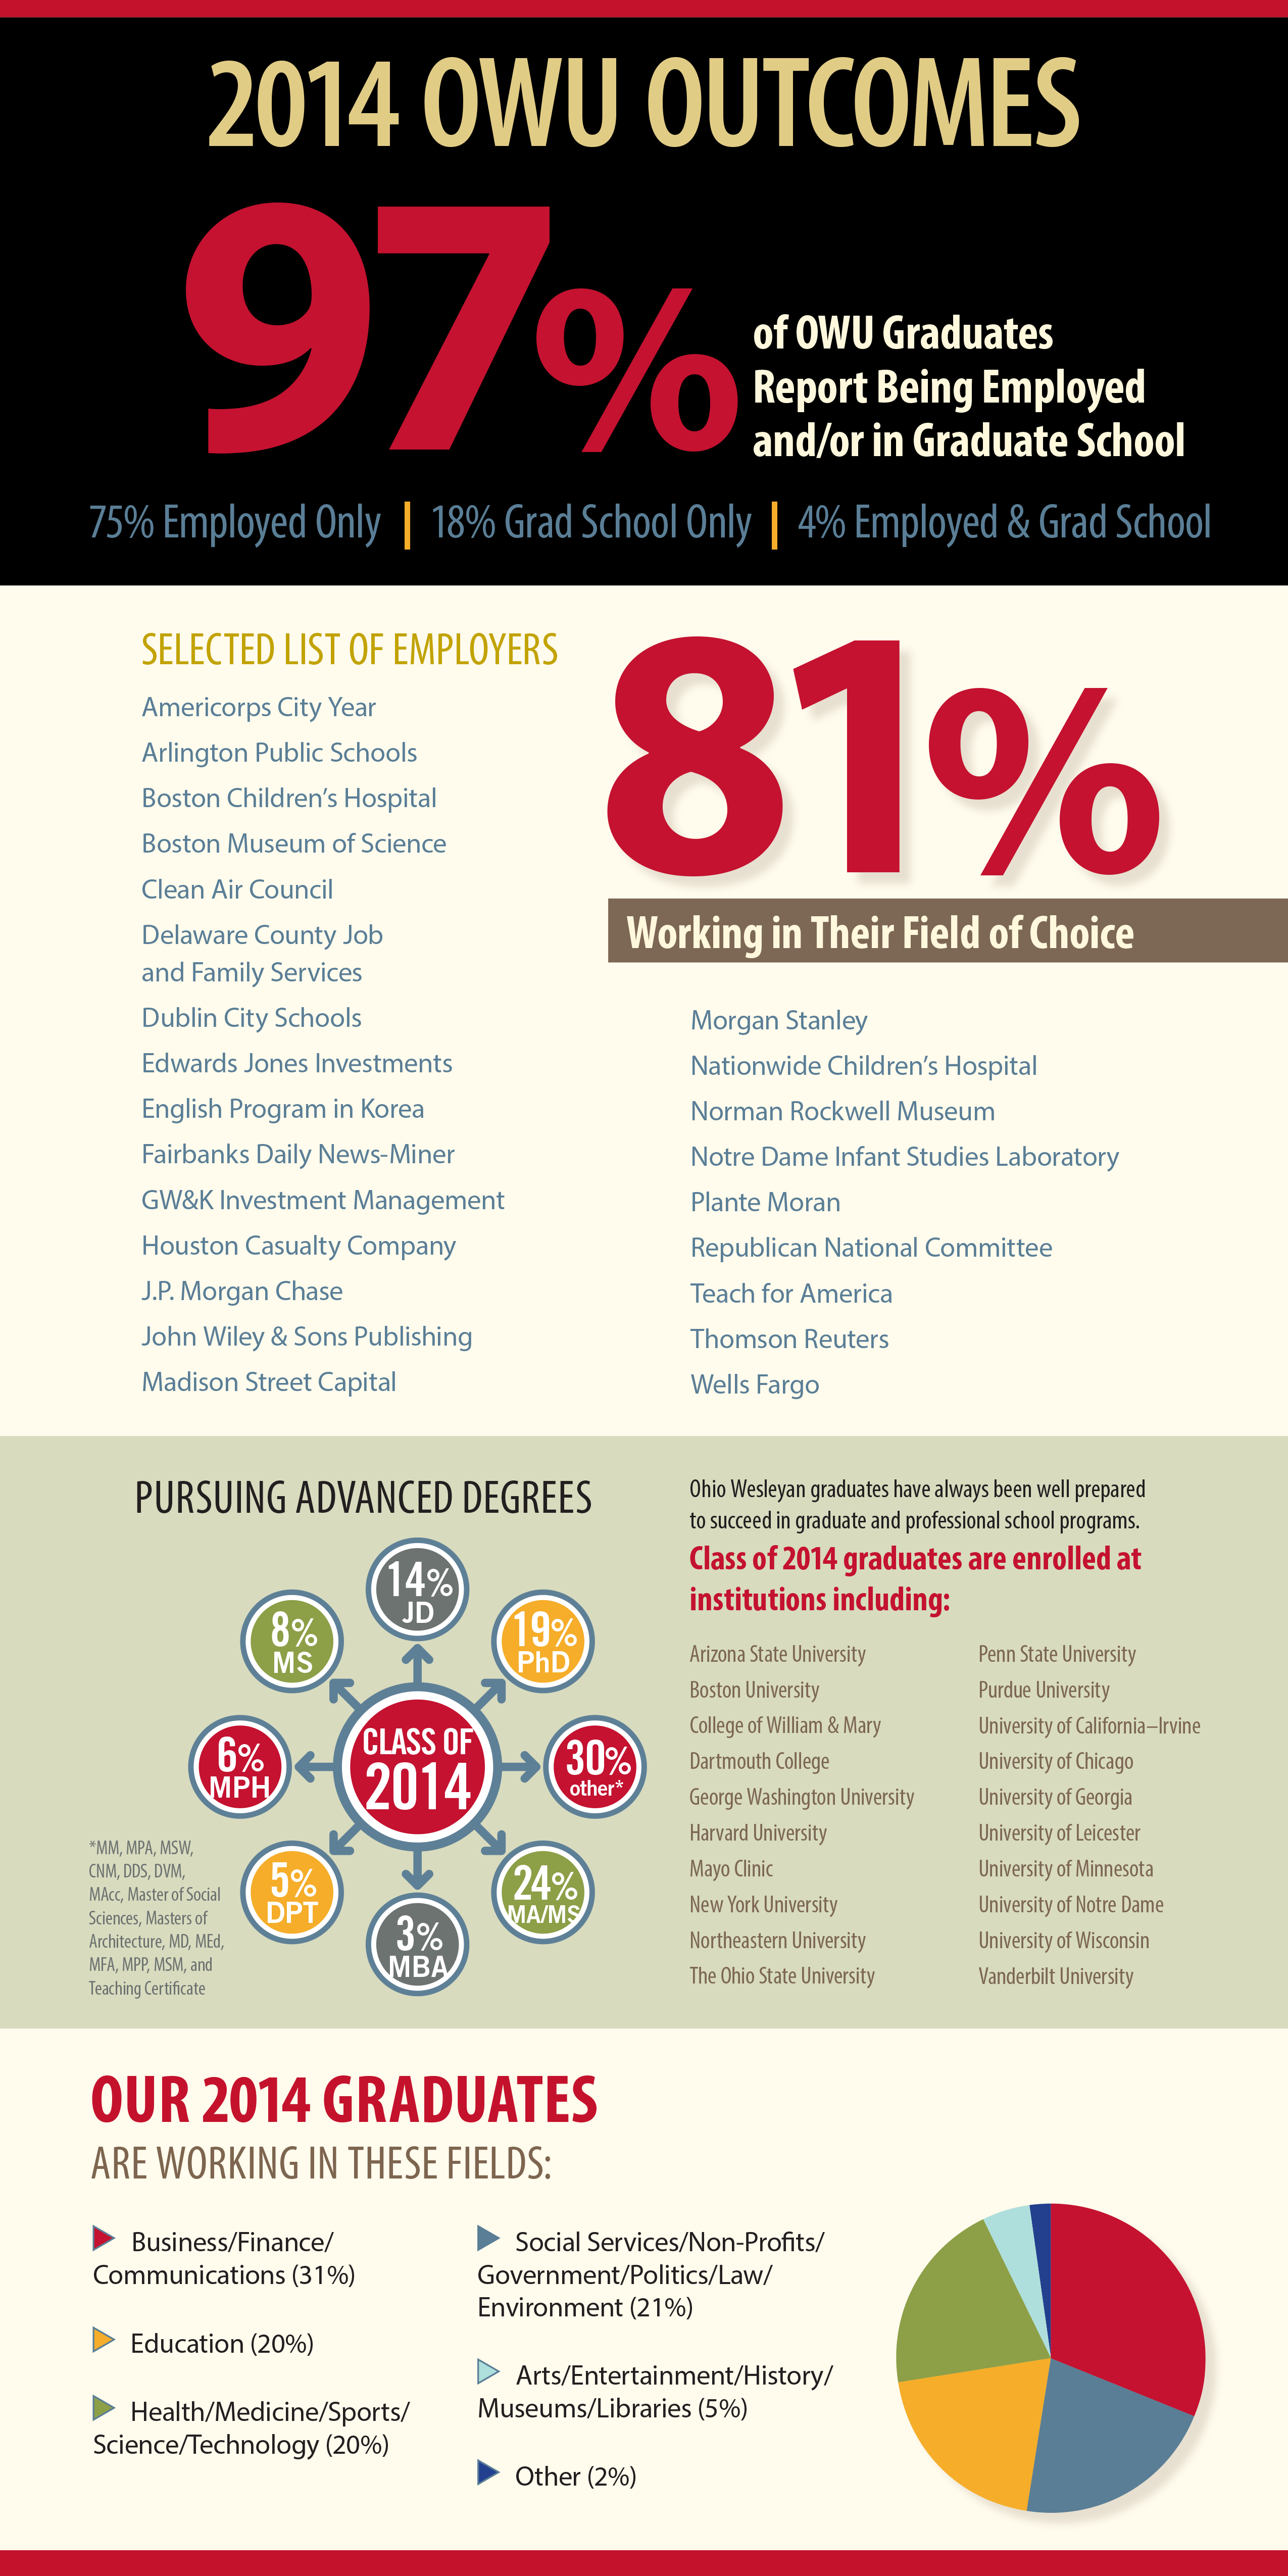 2014 Outcomes Report Infographic